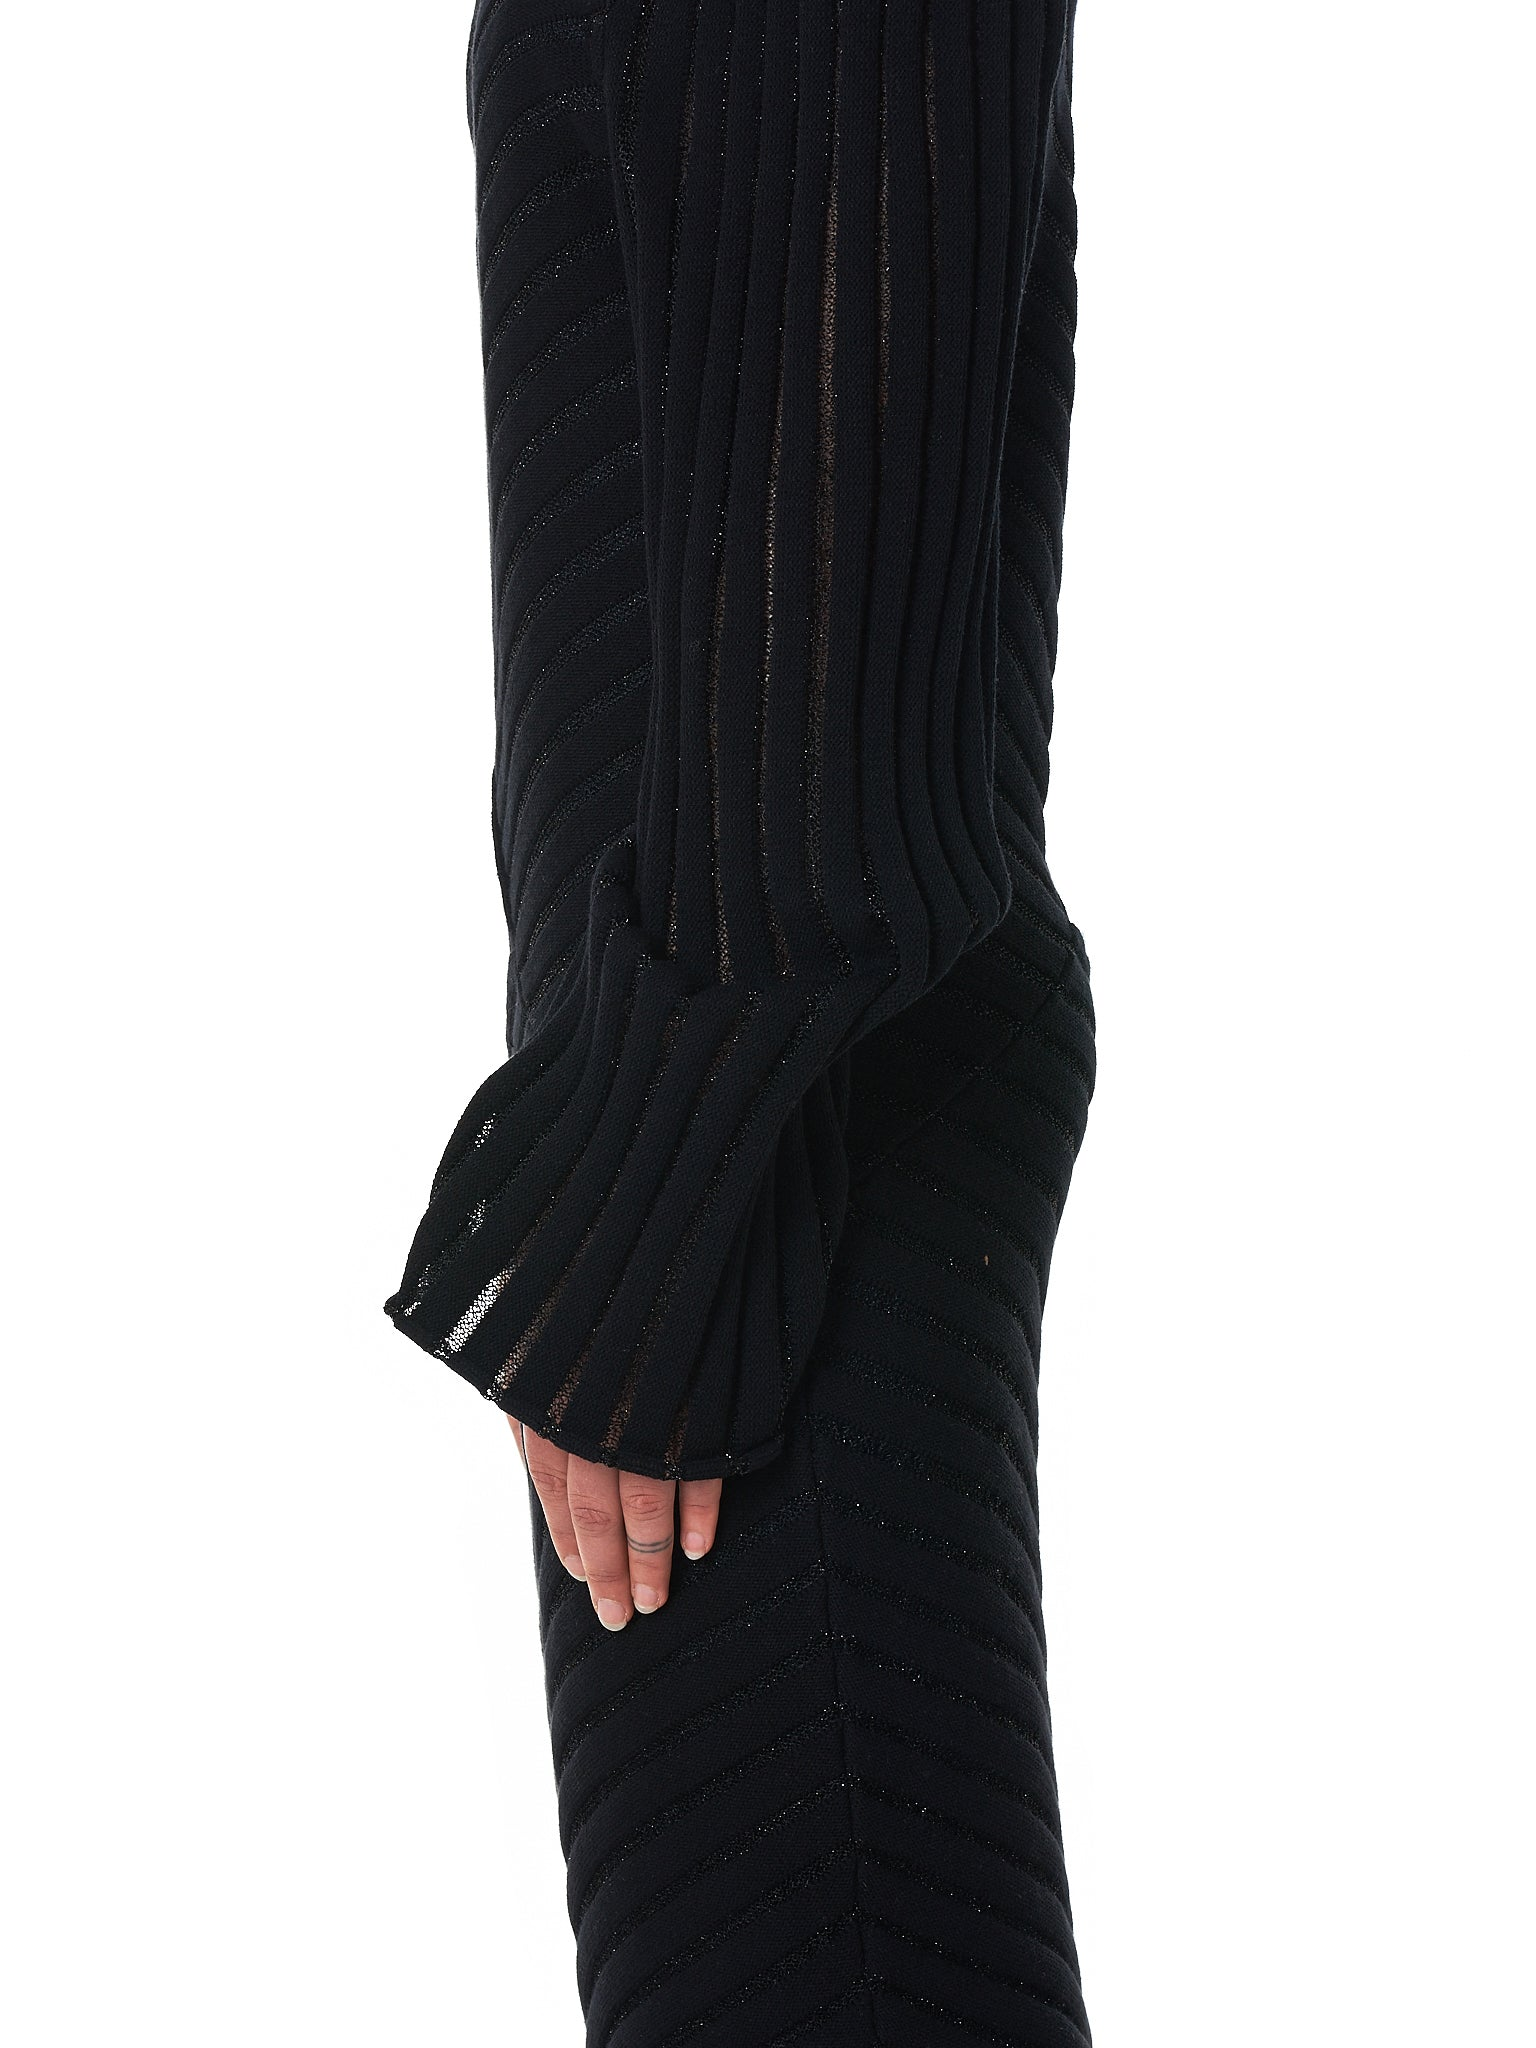 Knit Turtleneck Dress (D10-BLACK)